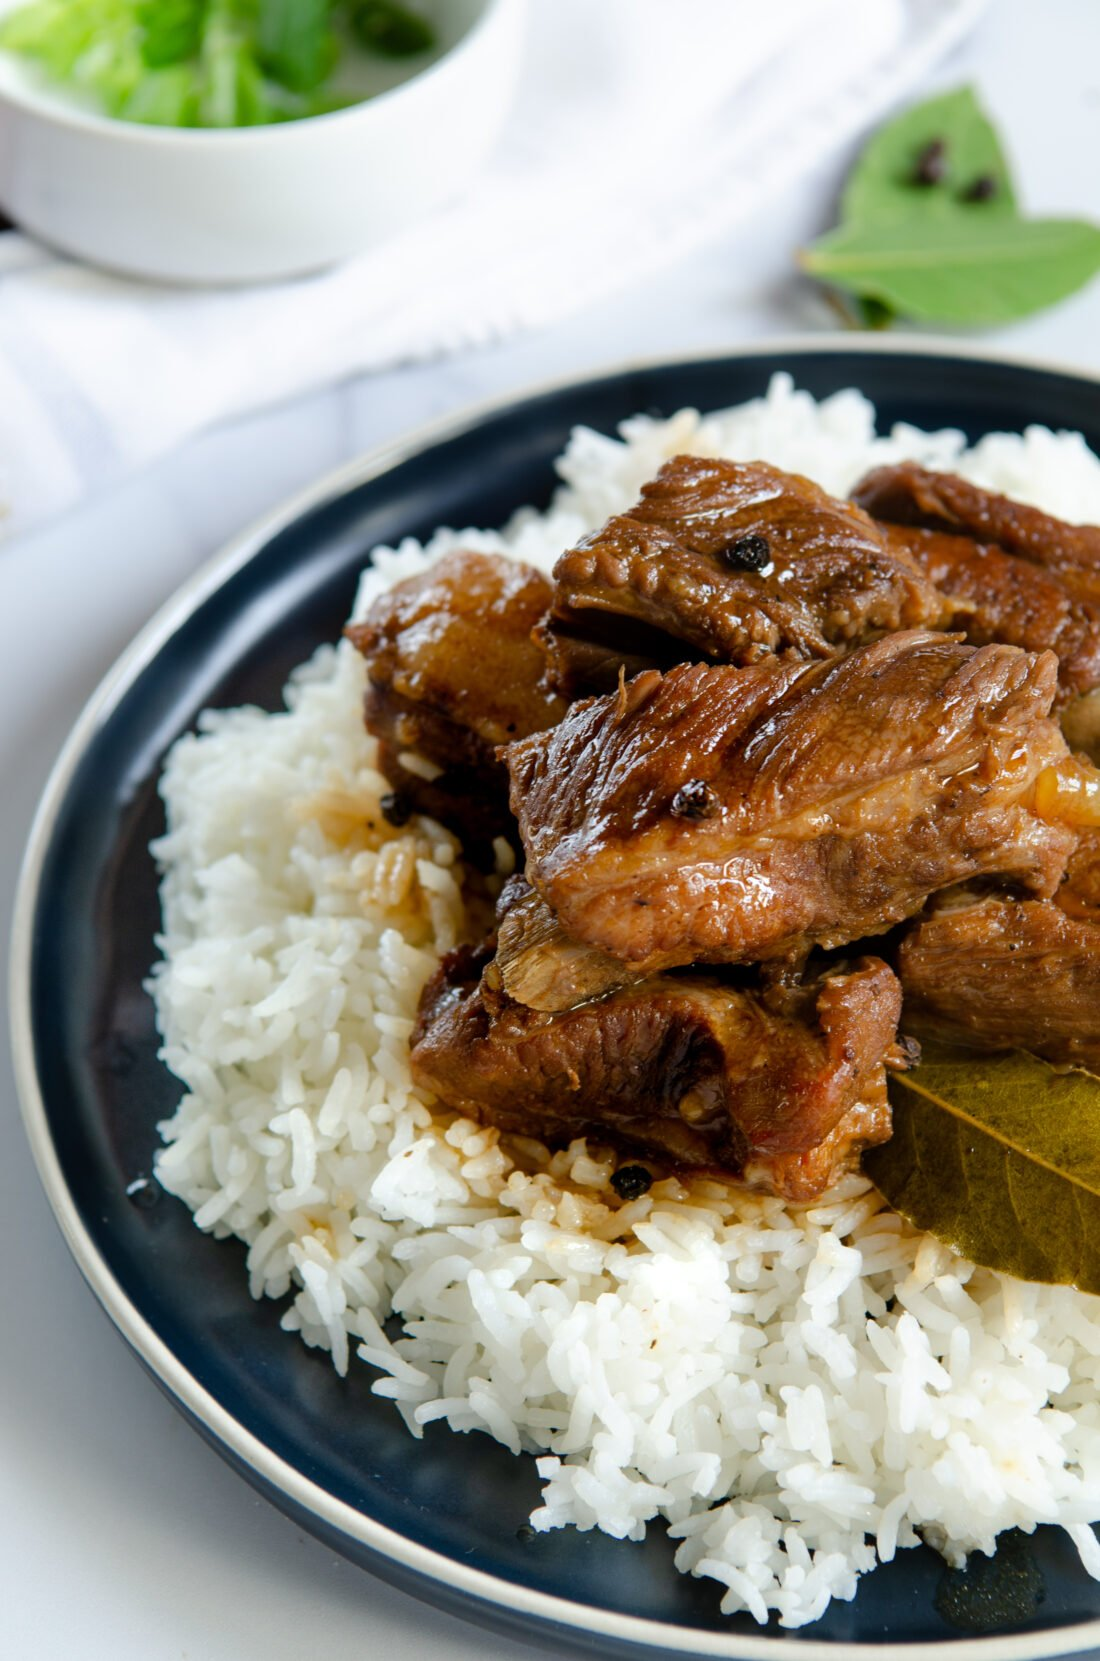 This fall of the bone Pressure Cooker Filipino Pork Adobo is to die for. Try my family's secret recipe and taste what we have been cooking for generations.